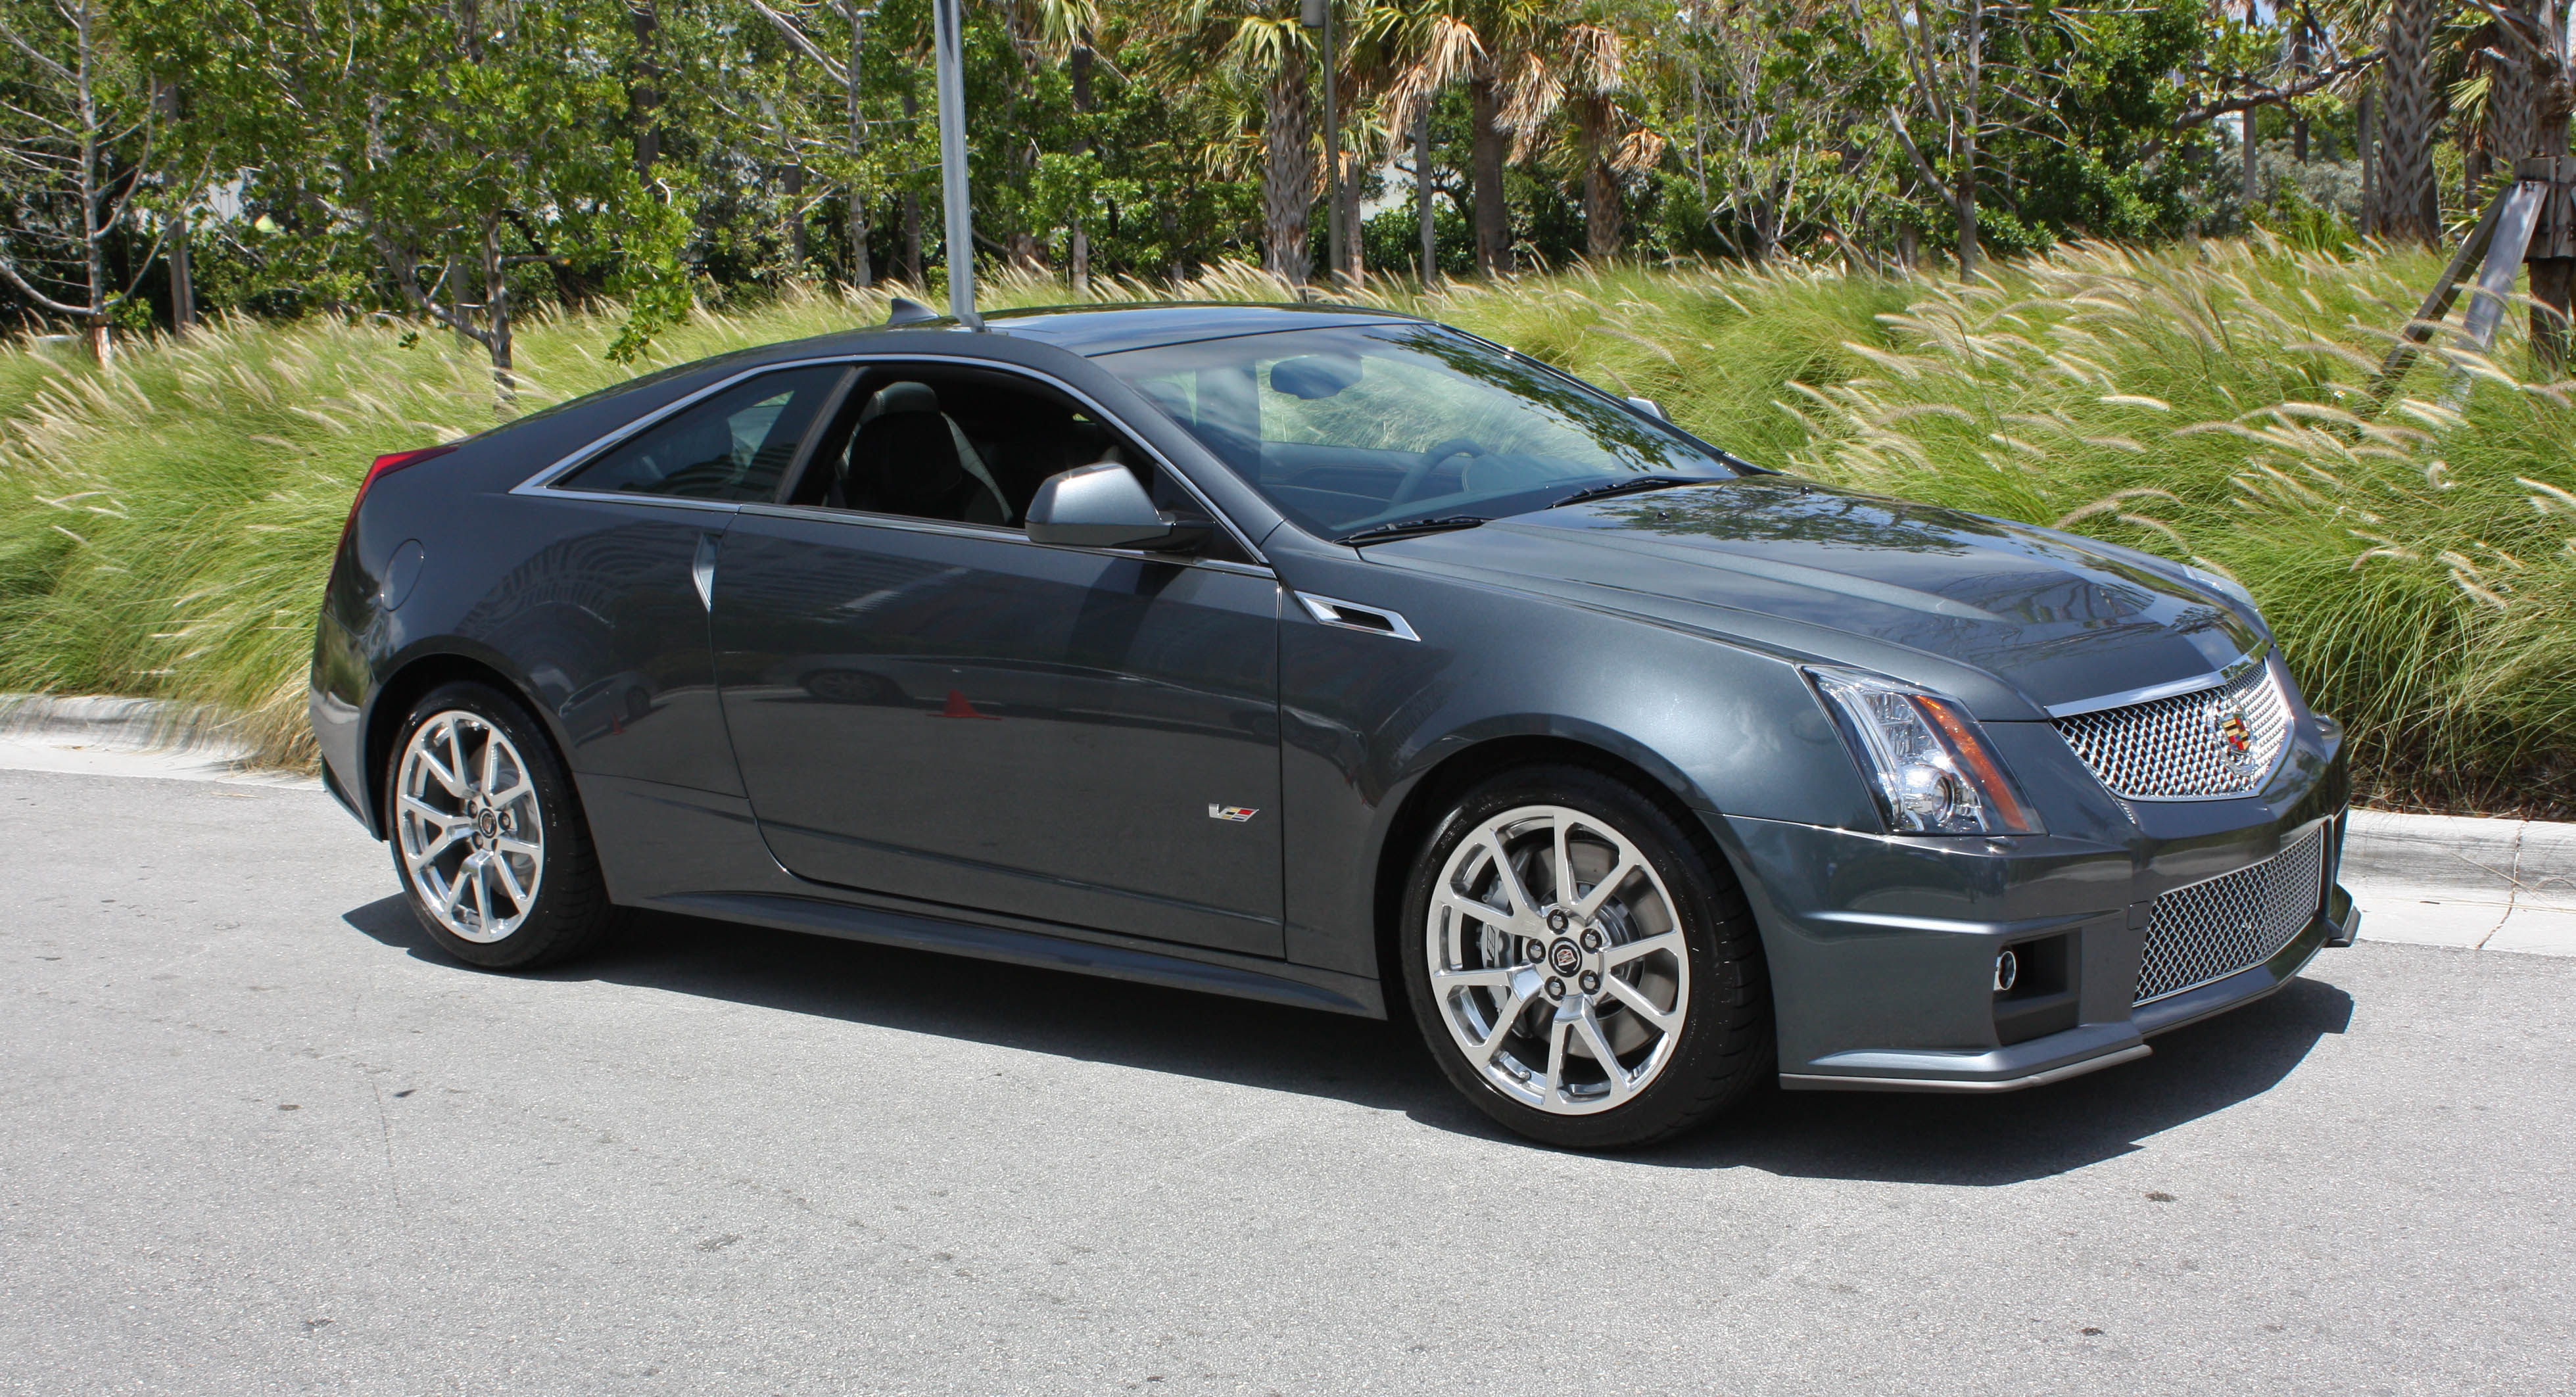 2011 cadillac cts v coupe information and photos momentcar. Black Bedroom Furniture Sets. Home Design Ideas